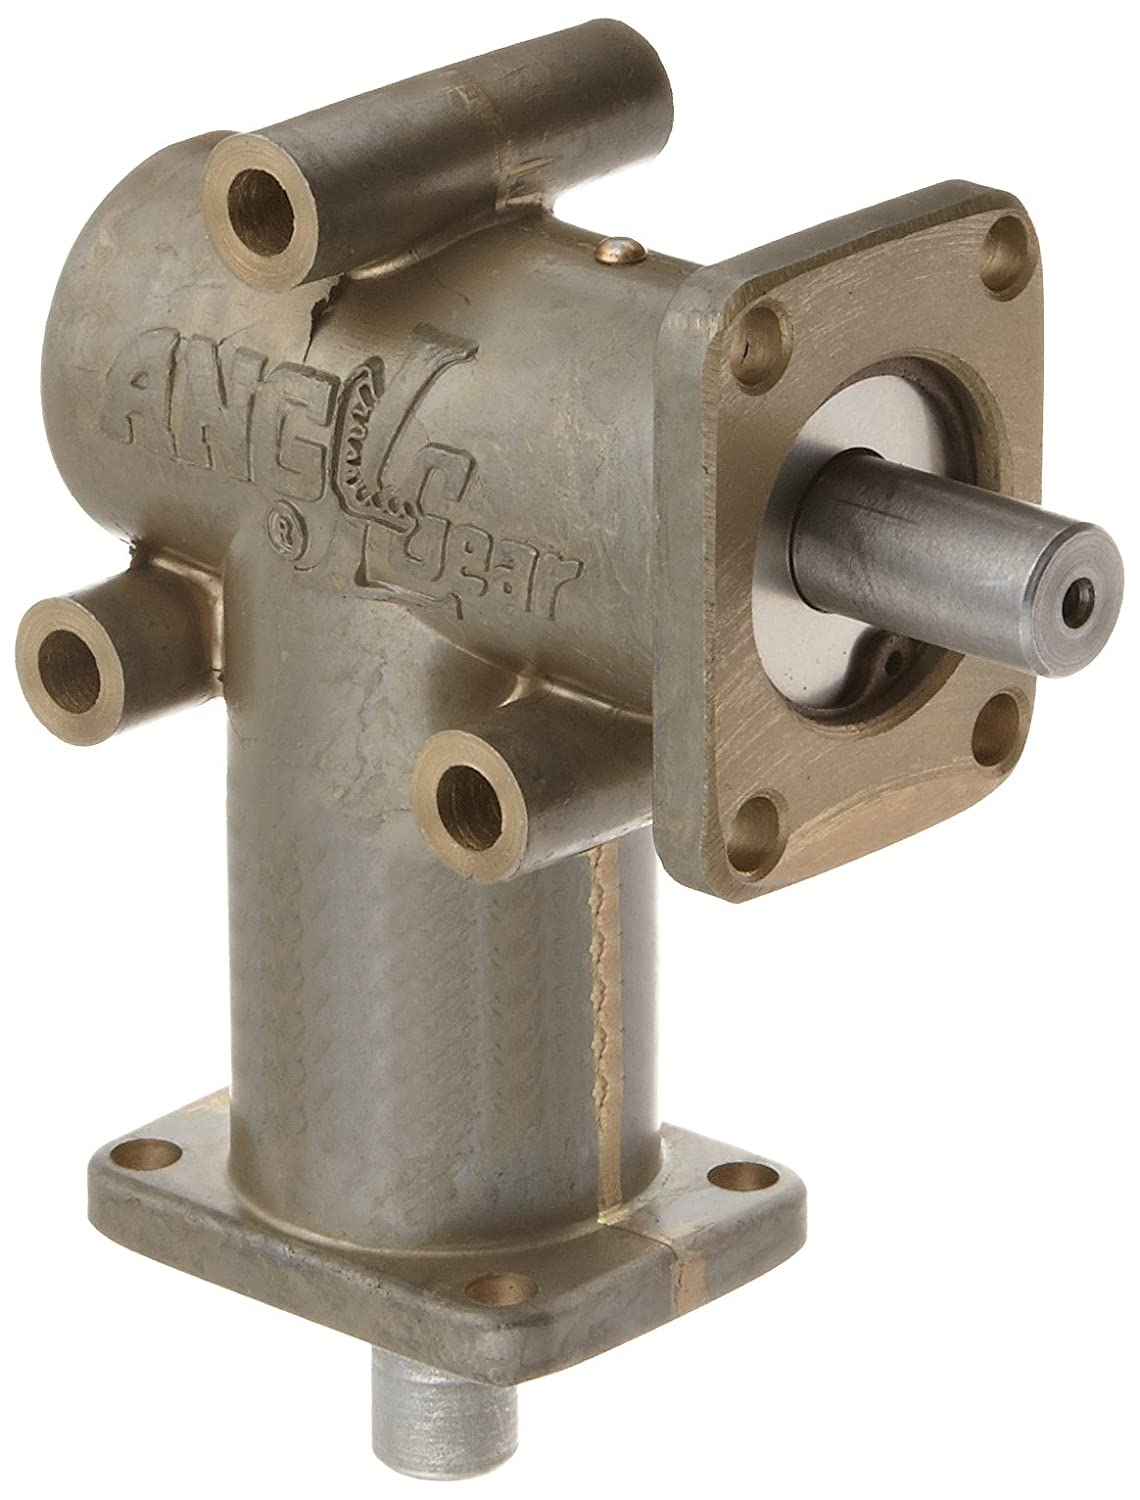 Image of Andantex R3000-2 Anglgear Right Angle Bevel Gear Drive, Universal Mounting, Single Output Shaft, 2 Flanges, Inch, 3/8' Shaft Diameter, 2:1 Ratio.11 Hp at 1750rpm Gearheads & Speed Reducers